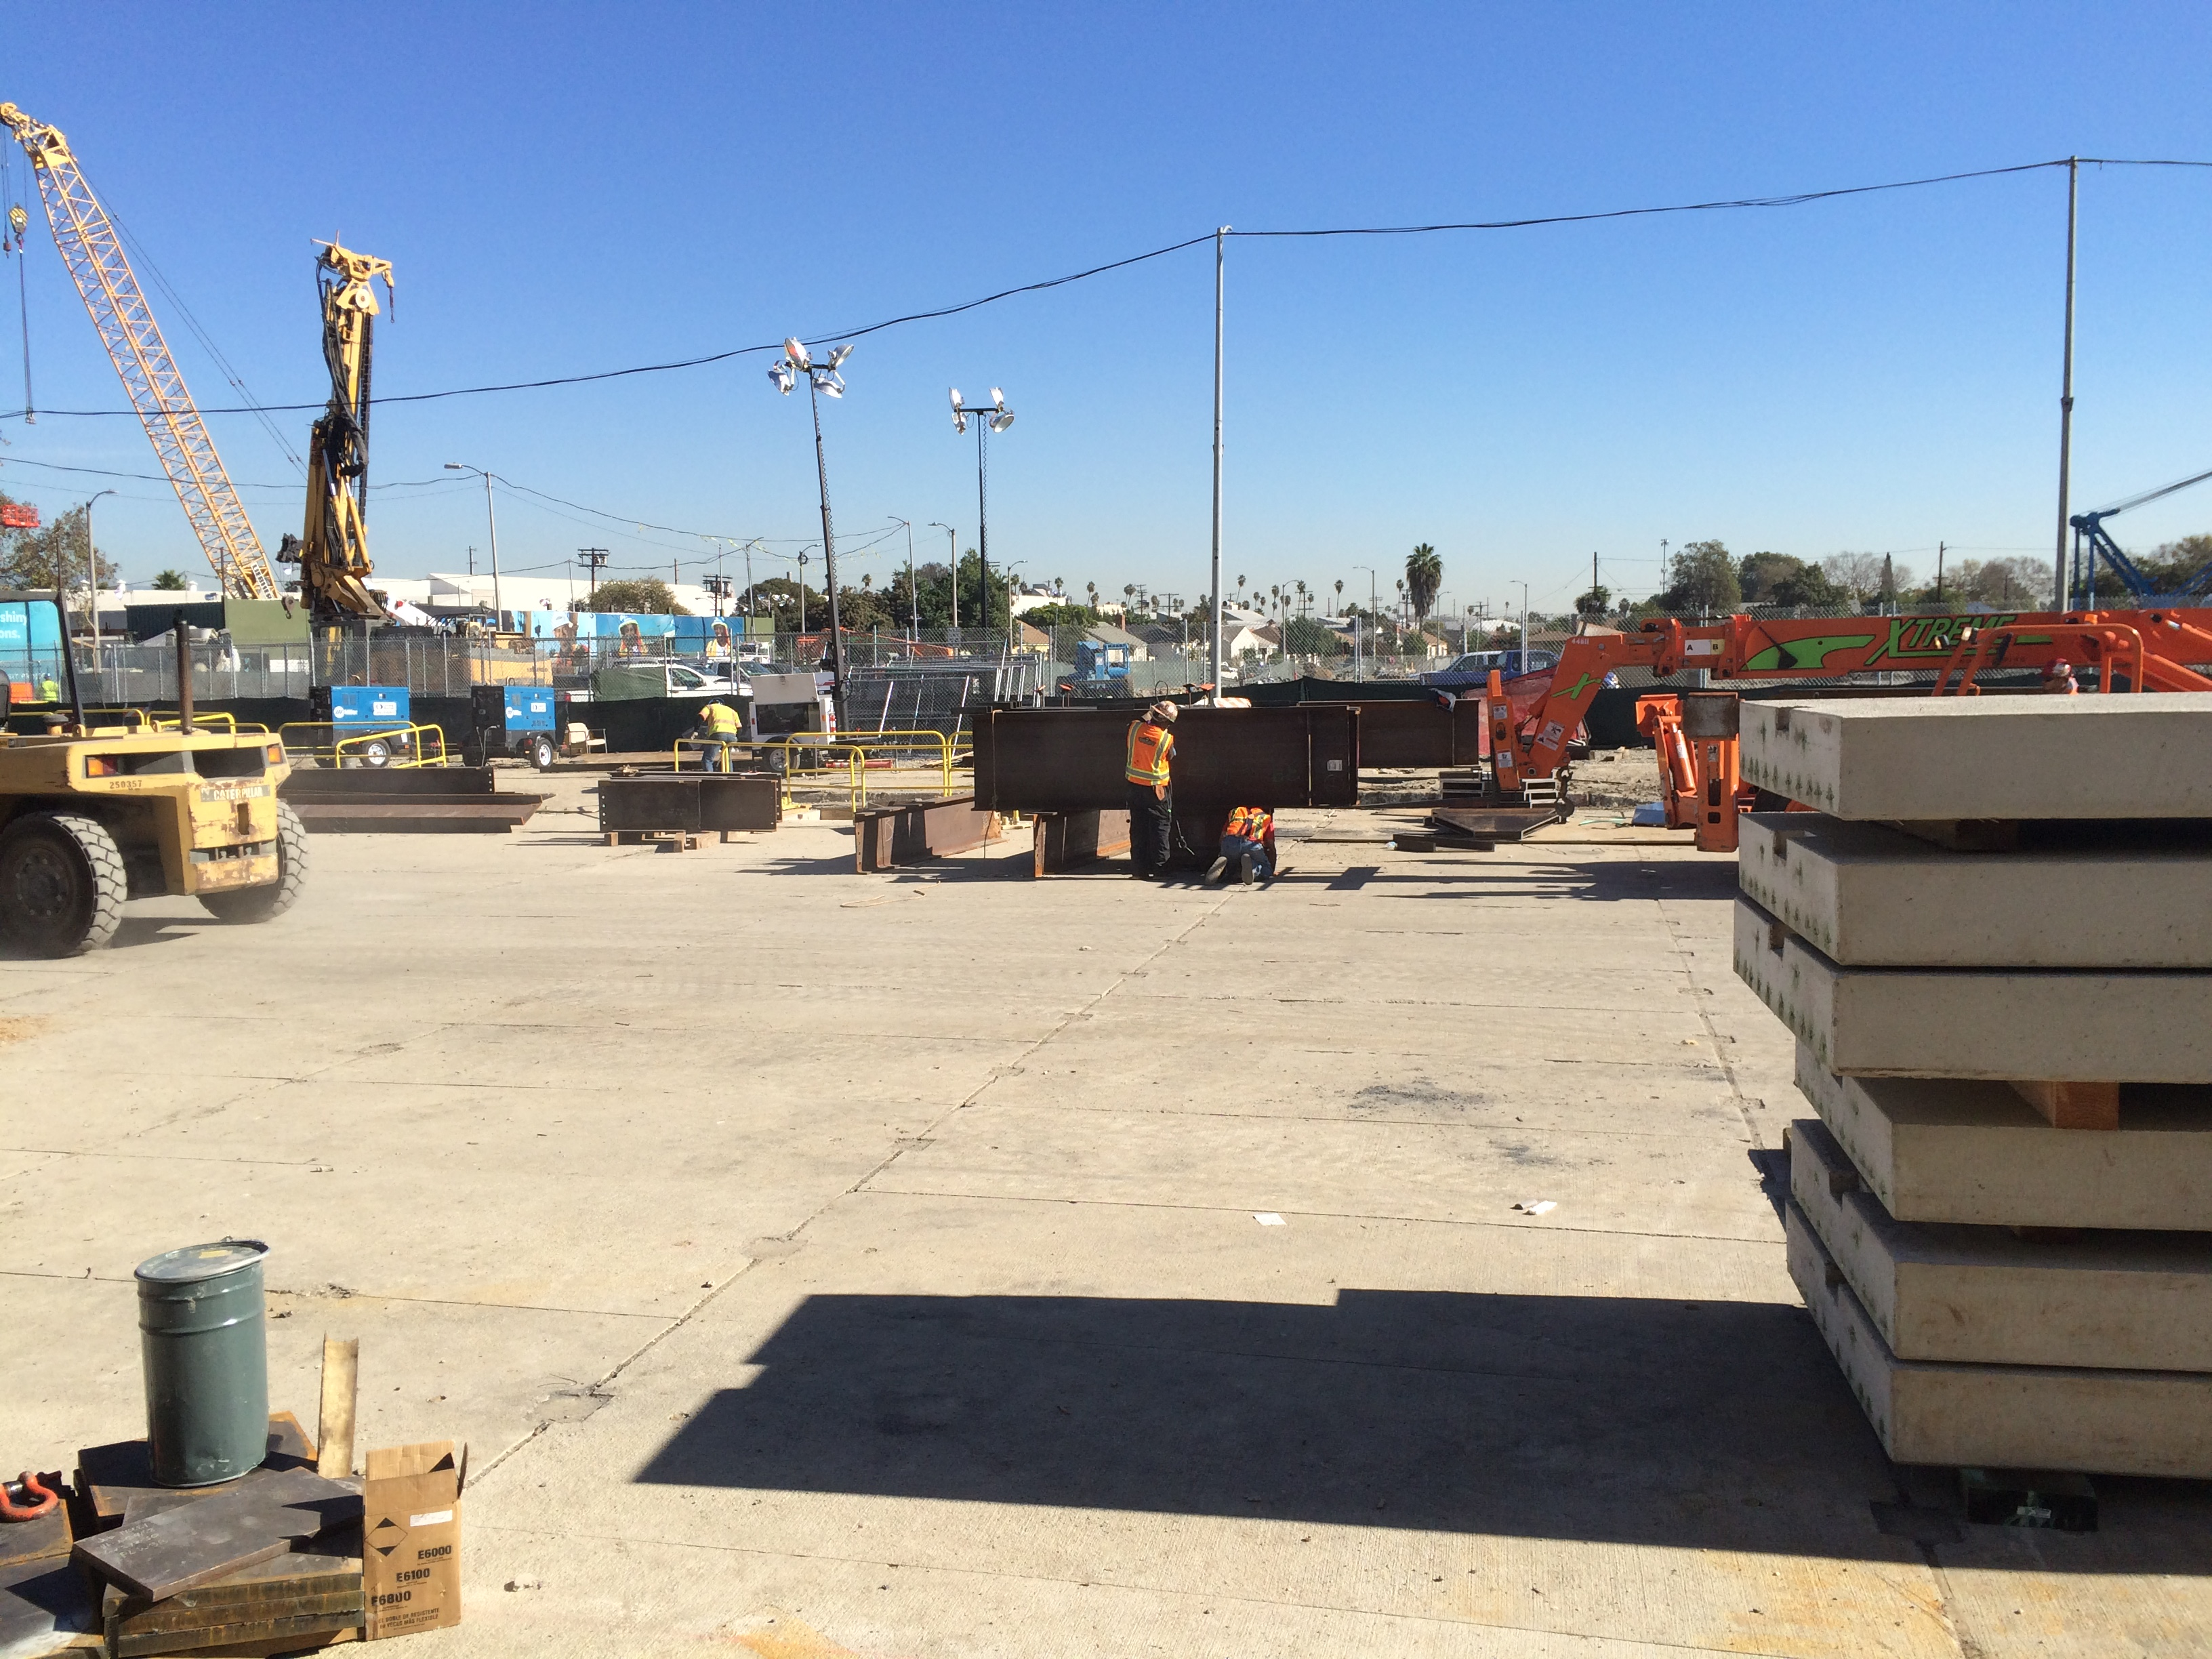 View of Crenshaw Boulevard between Rodeo Road and Rodeo Place where the decking has been completed. Fotos José Ubaldo/Metro.